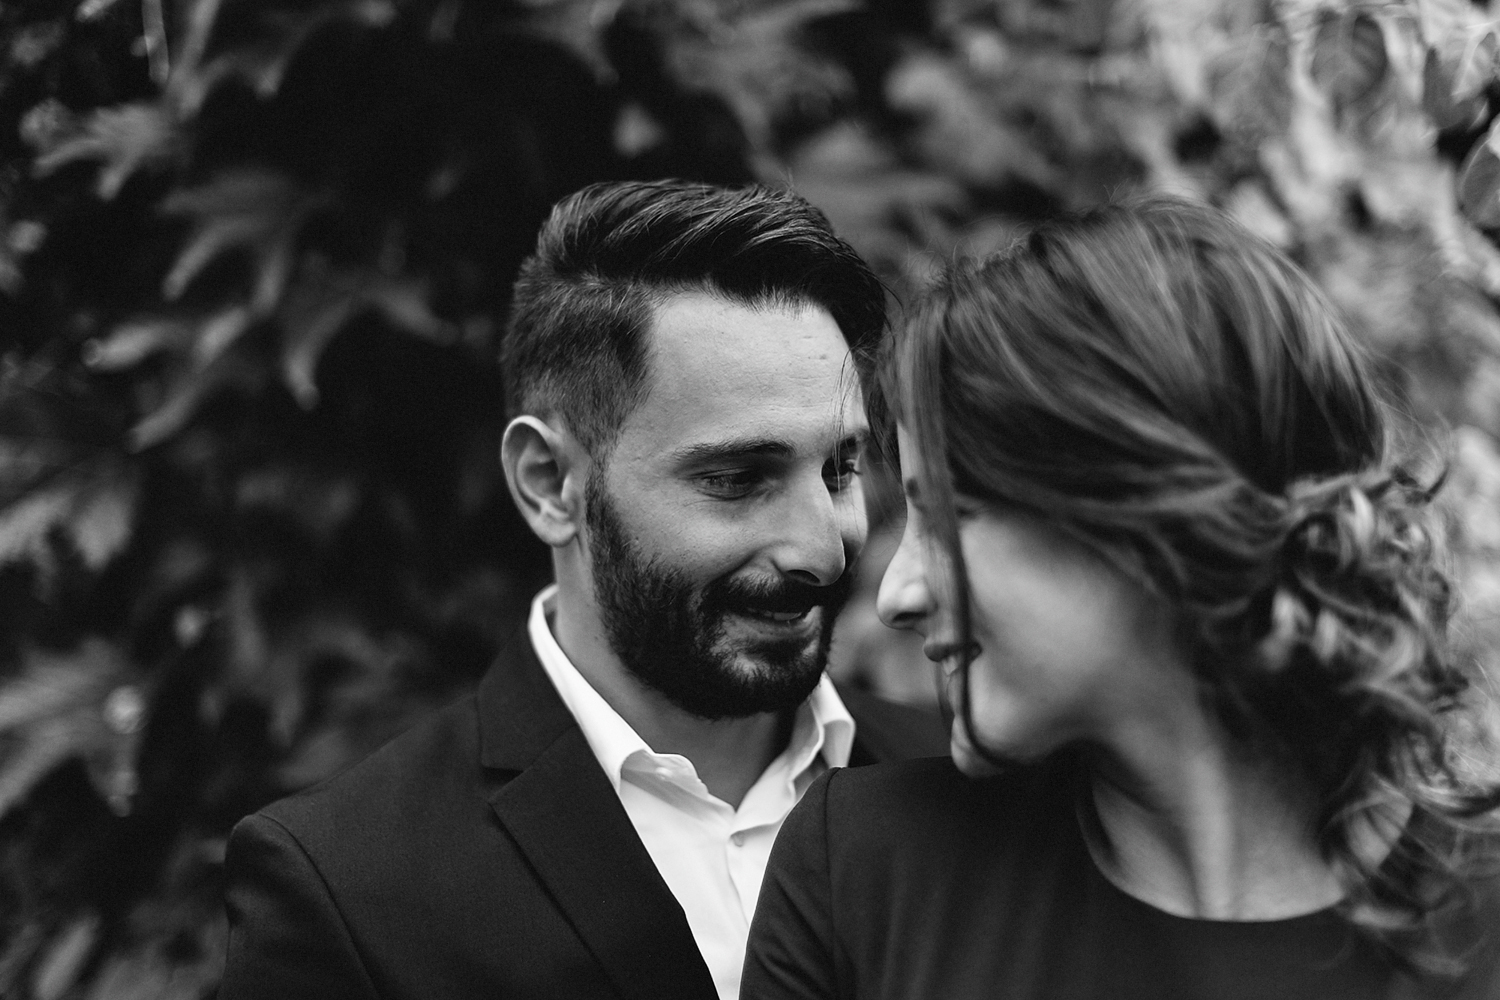 toronto-restaurant-elopement-small-wedding-intimate-portraits-of-bride-and-groom-in-oakville-bw.jpg